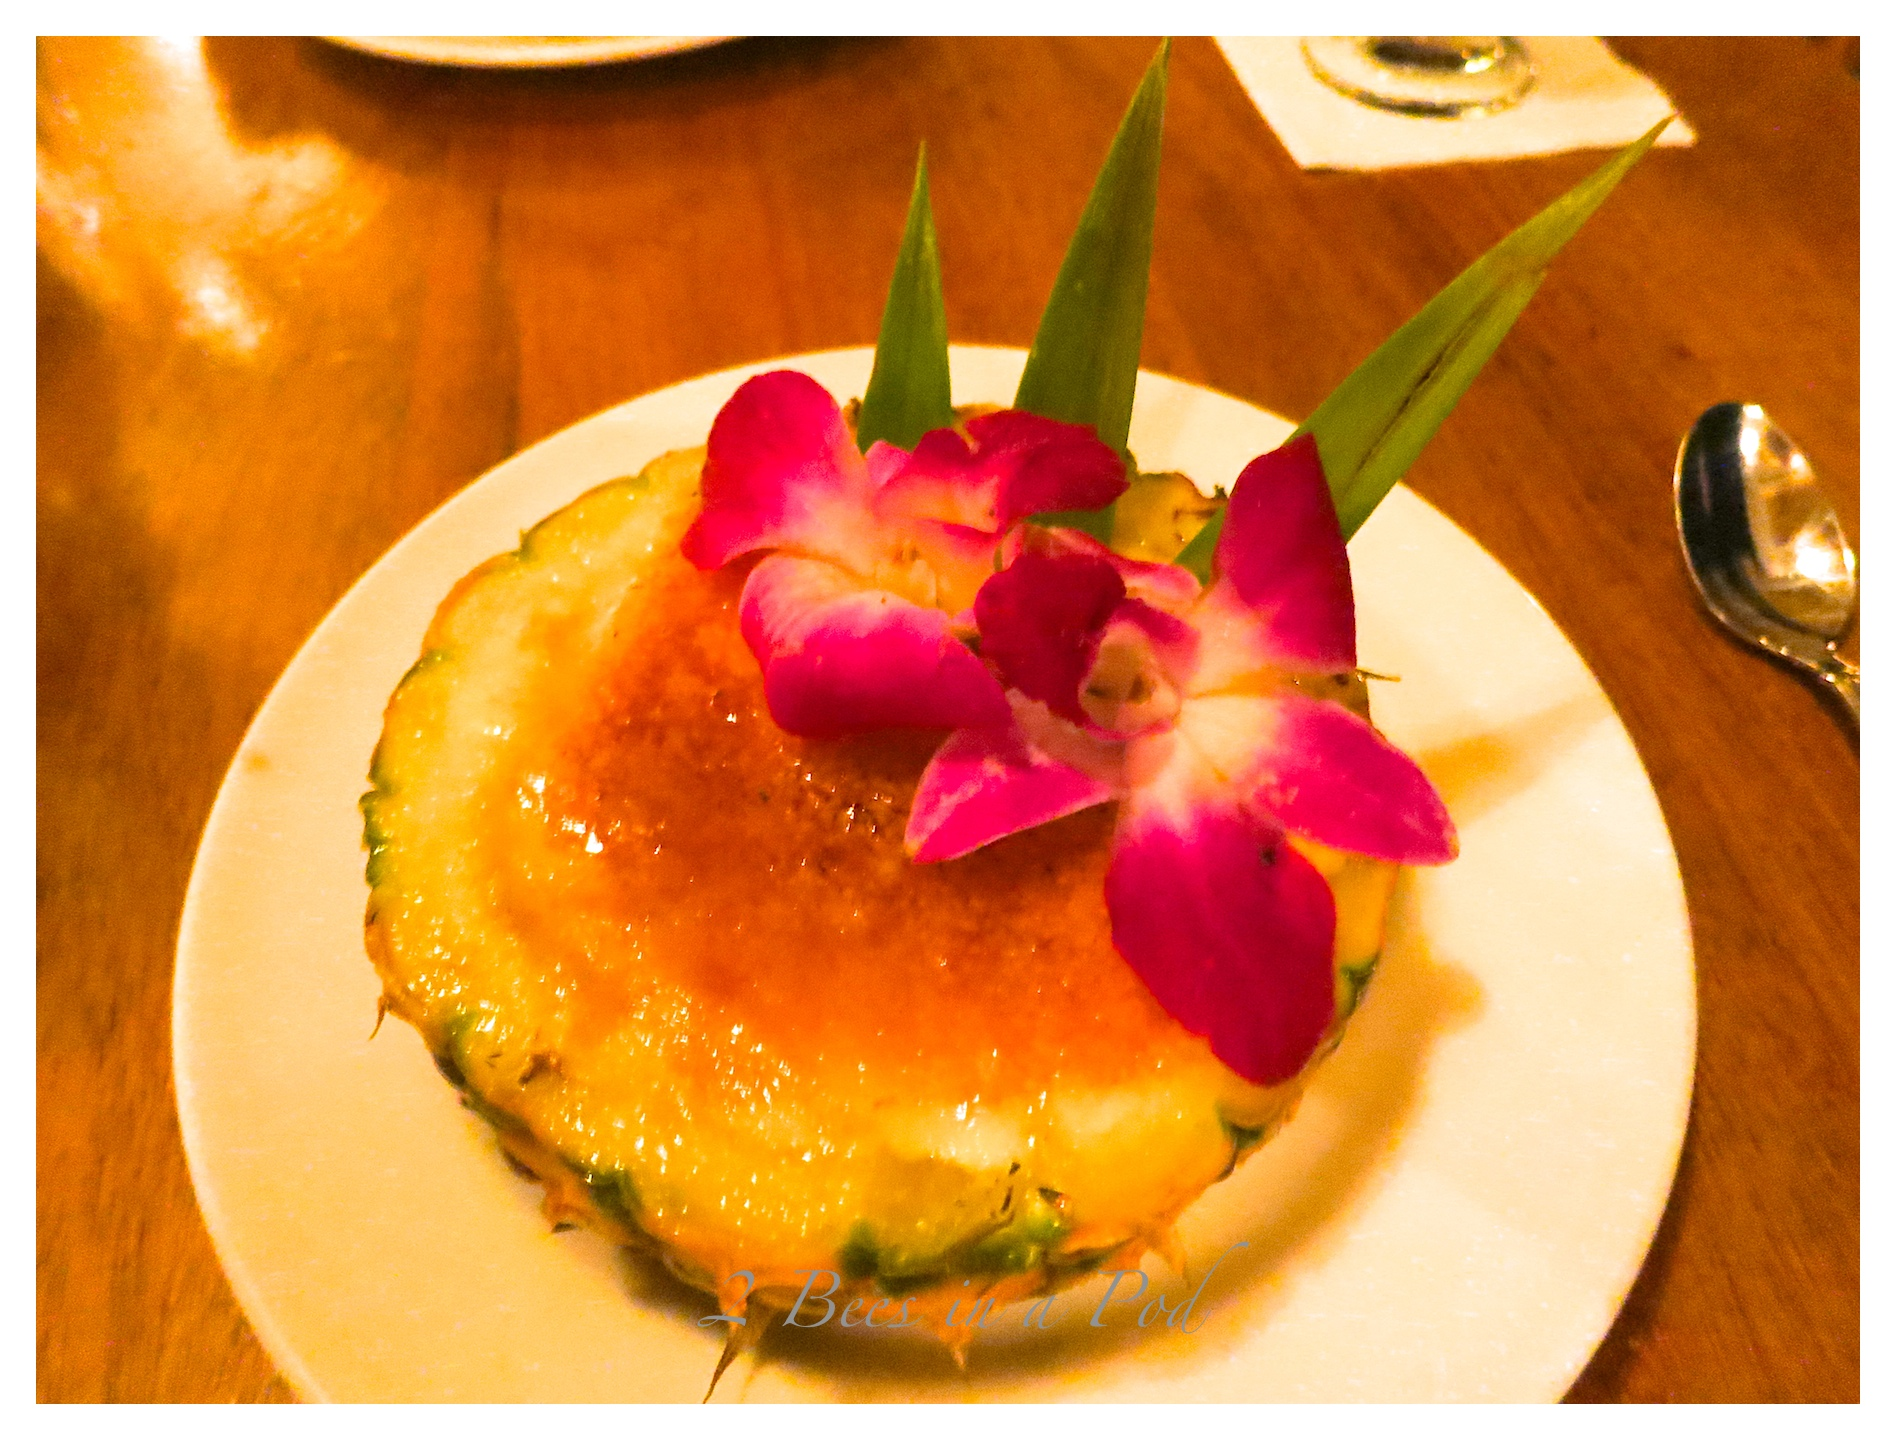 We were thrilled to discover Hula Grill restaurant on the beach at Waikiki. Beautiful sunset, tasty, pretty food and the first Mai Tai of my life.